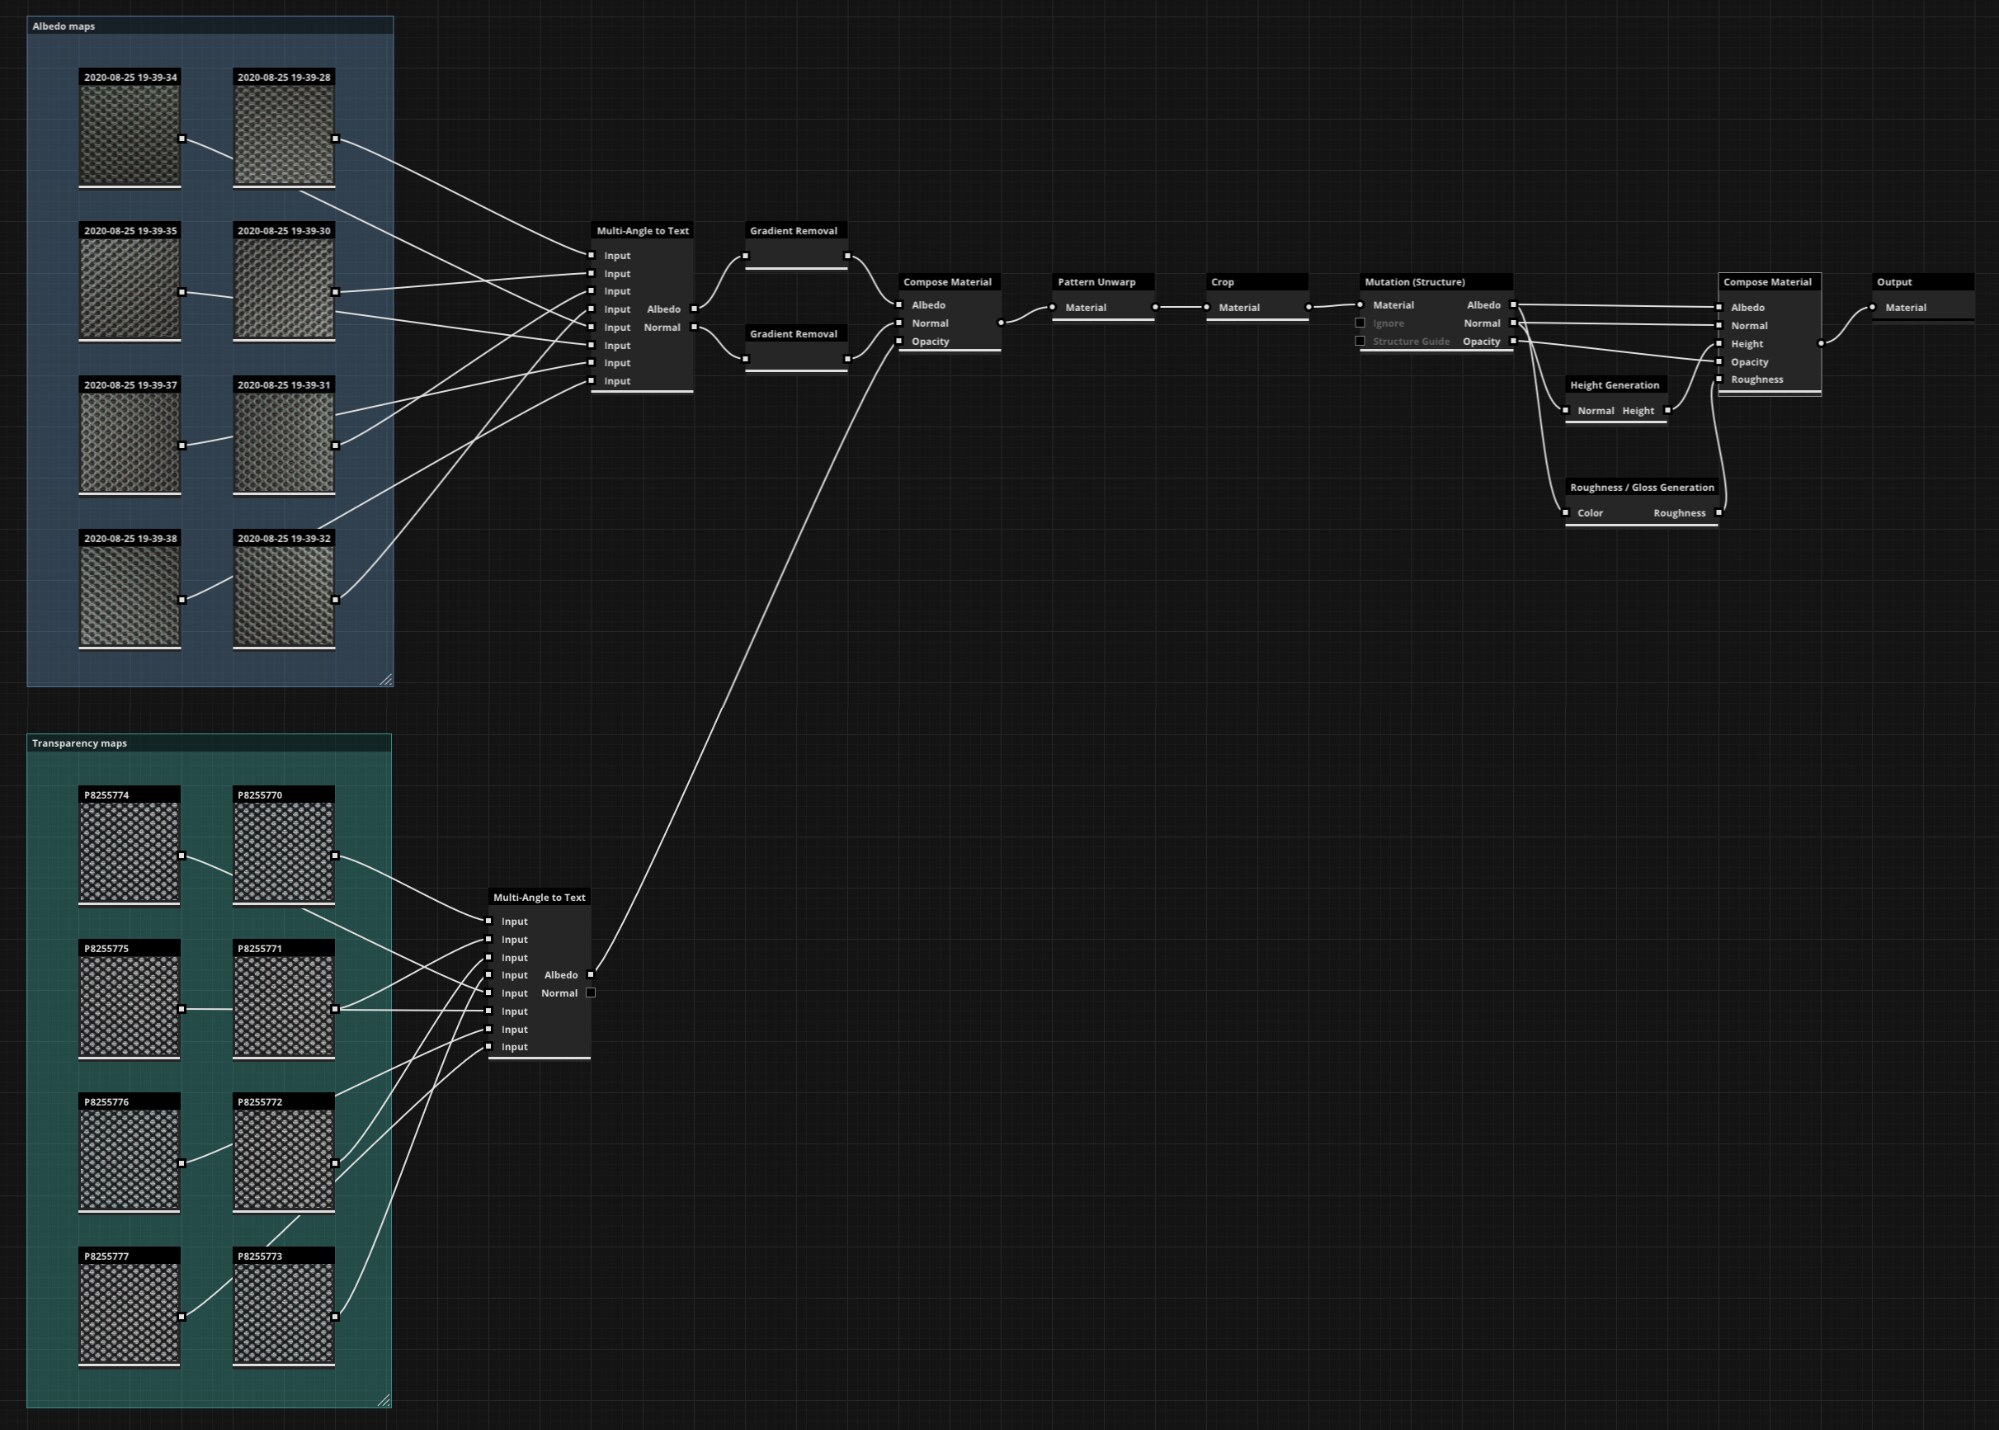 Final node graph of all the textures used by Bieryt and team in ArtEngine.